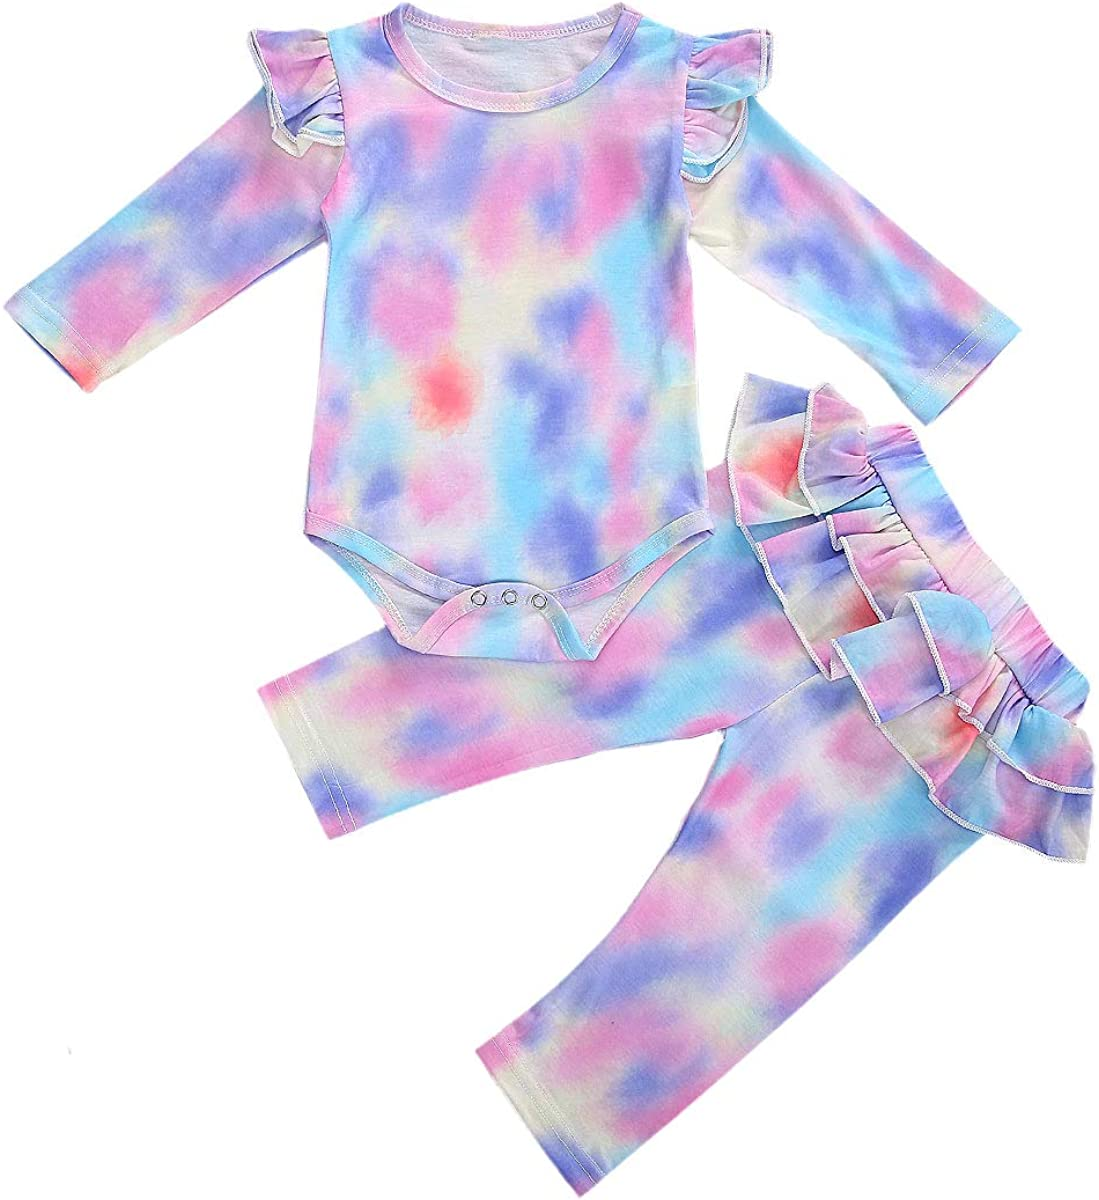 Newborn Baby Girl Outfit Long Sleeve Romper Bodysuit Ruffle Pants Tie Dye Clothes Fall Winter Clothes 2PCS Outfits Set (Purple, 3-6 Months)